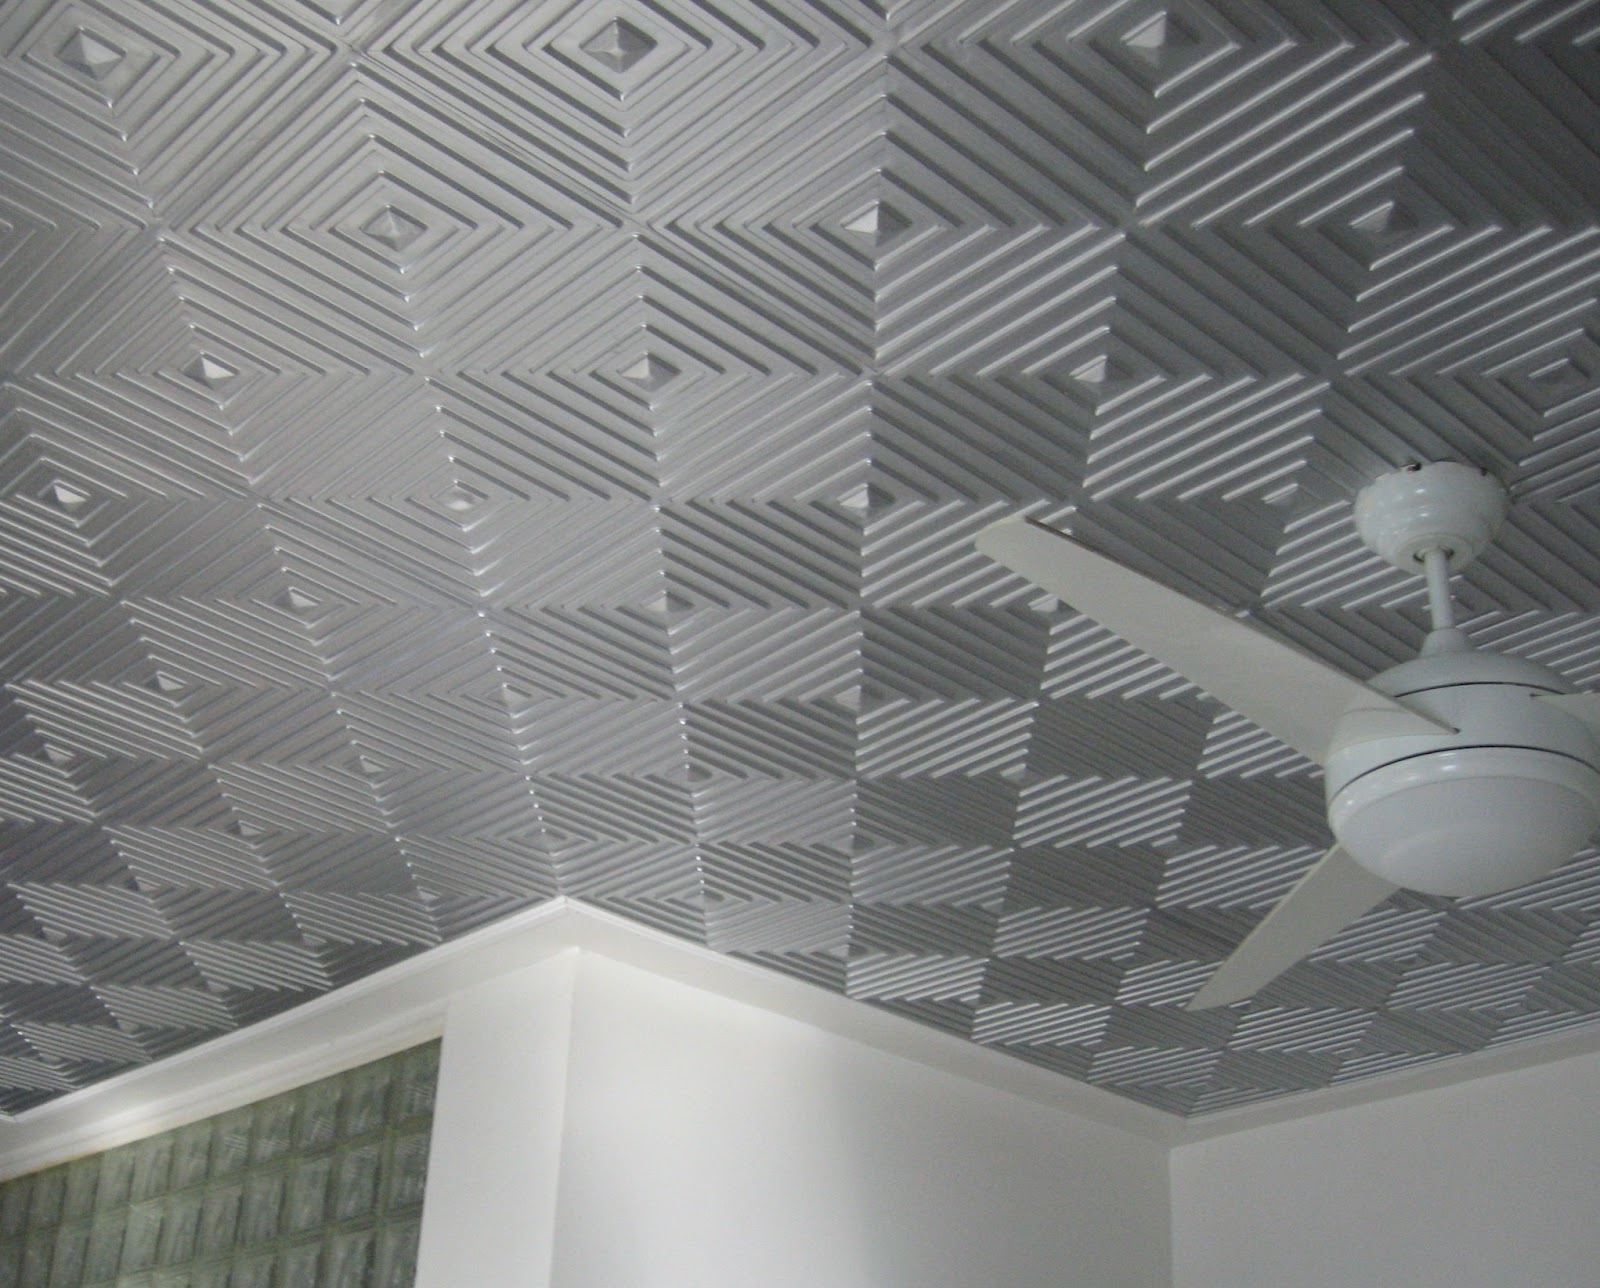 Installing tin ceiling tiles for wonderfully decorated home the decorative tile for the ceiling is come with fire safety also so these are suited for enhancing security matter for your home offices dailygadgetfo Choice Image